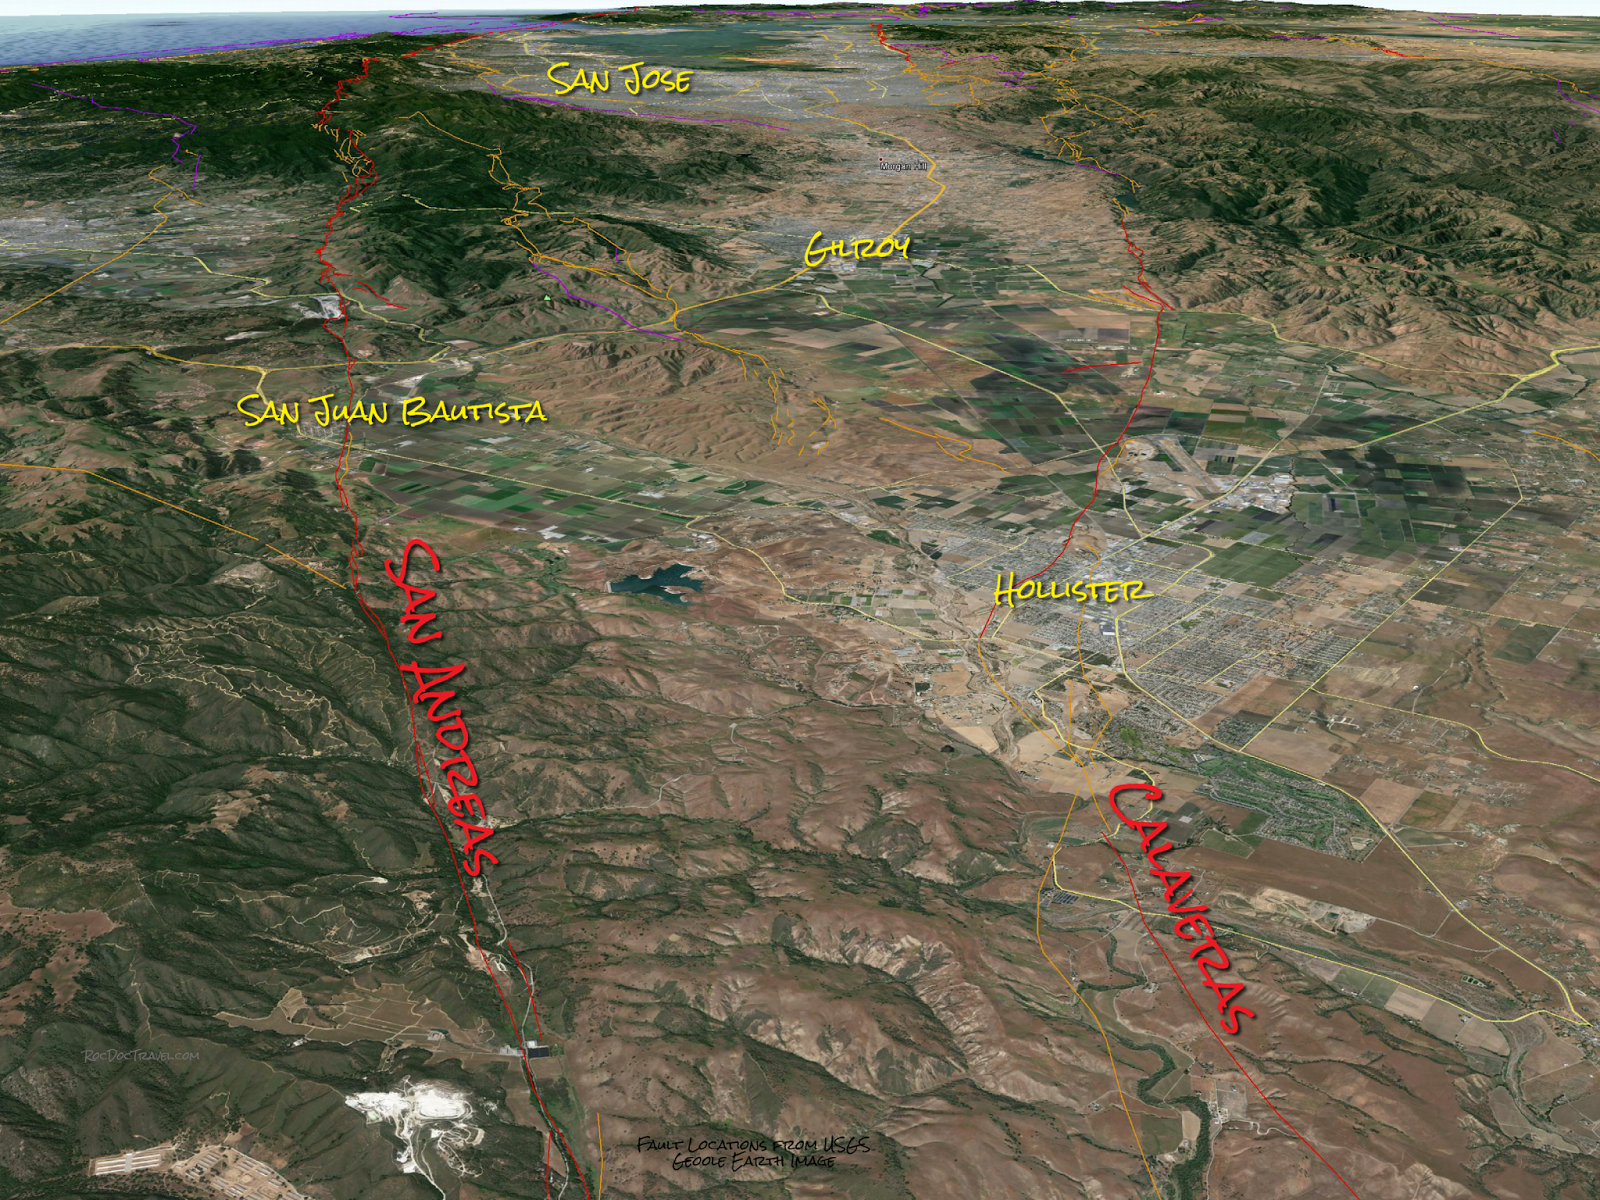 Google Earth view of the Hollister valley